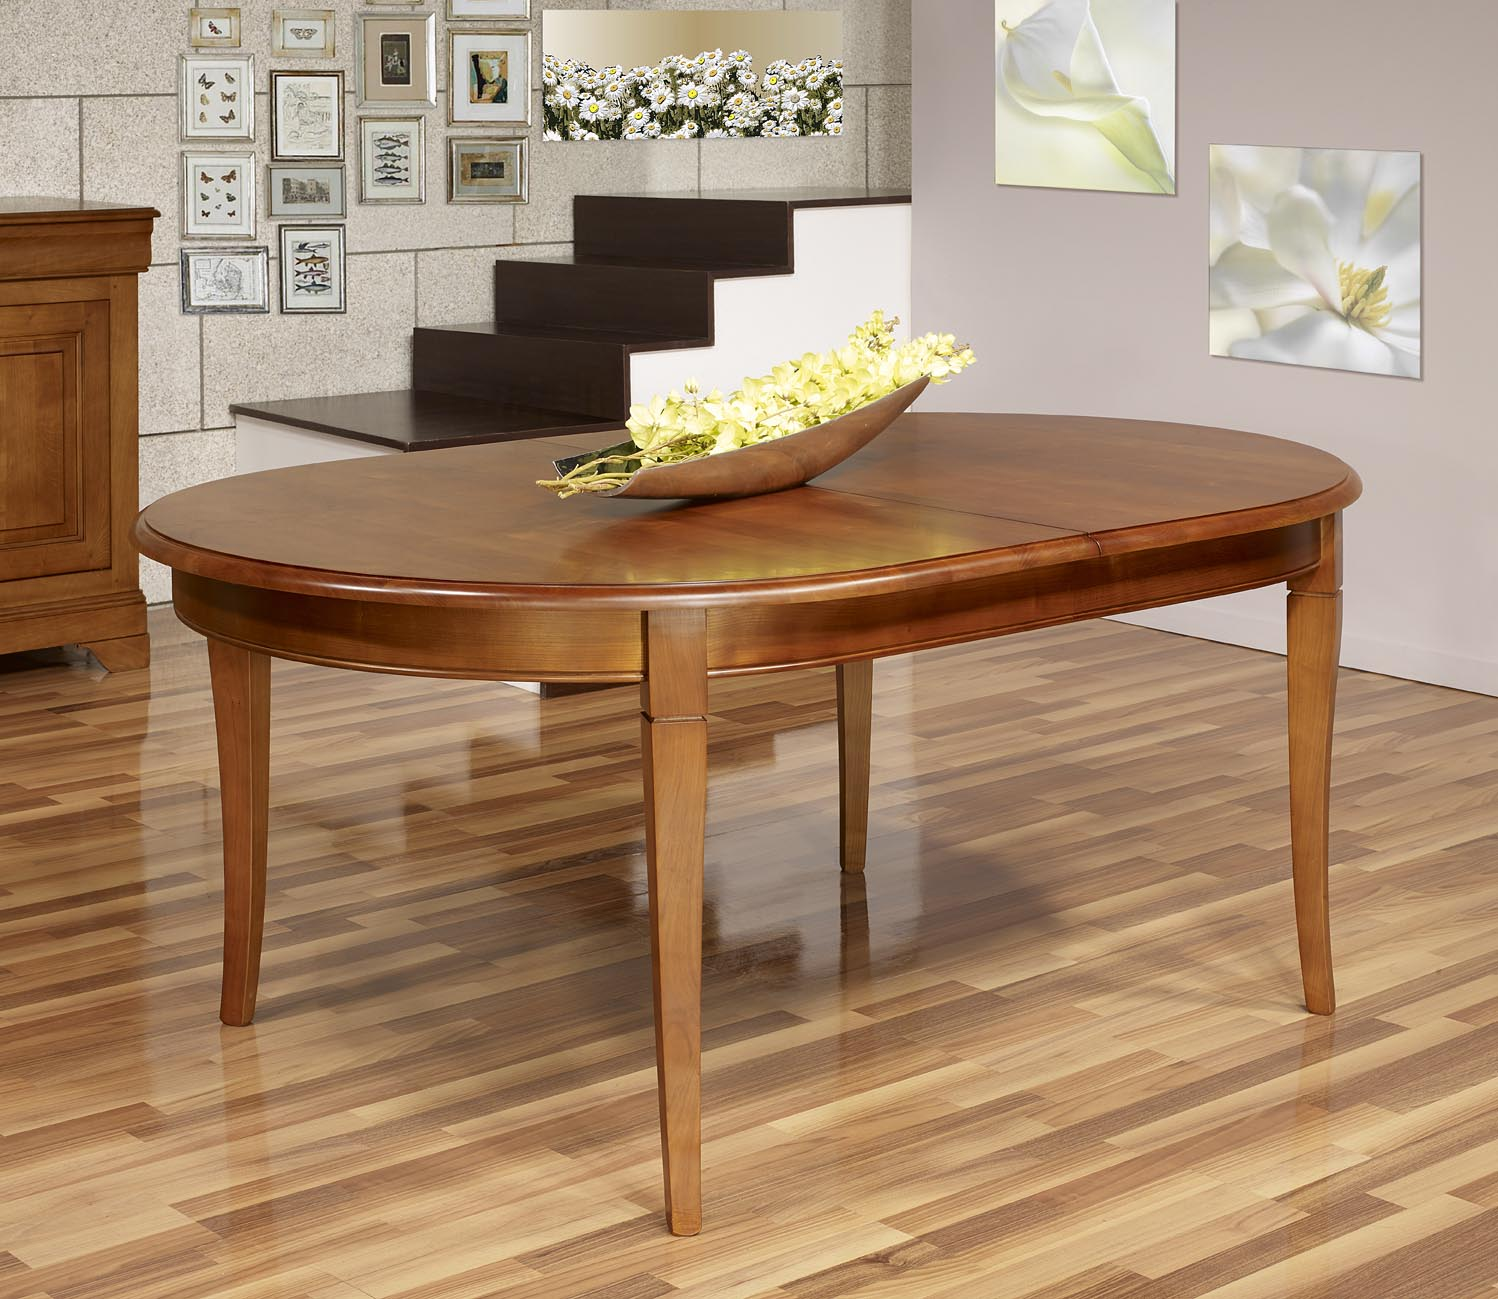 Table ovale constance 180 120 en merisier massif de style for Table ovale allonge